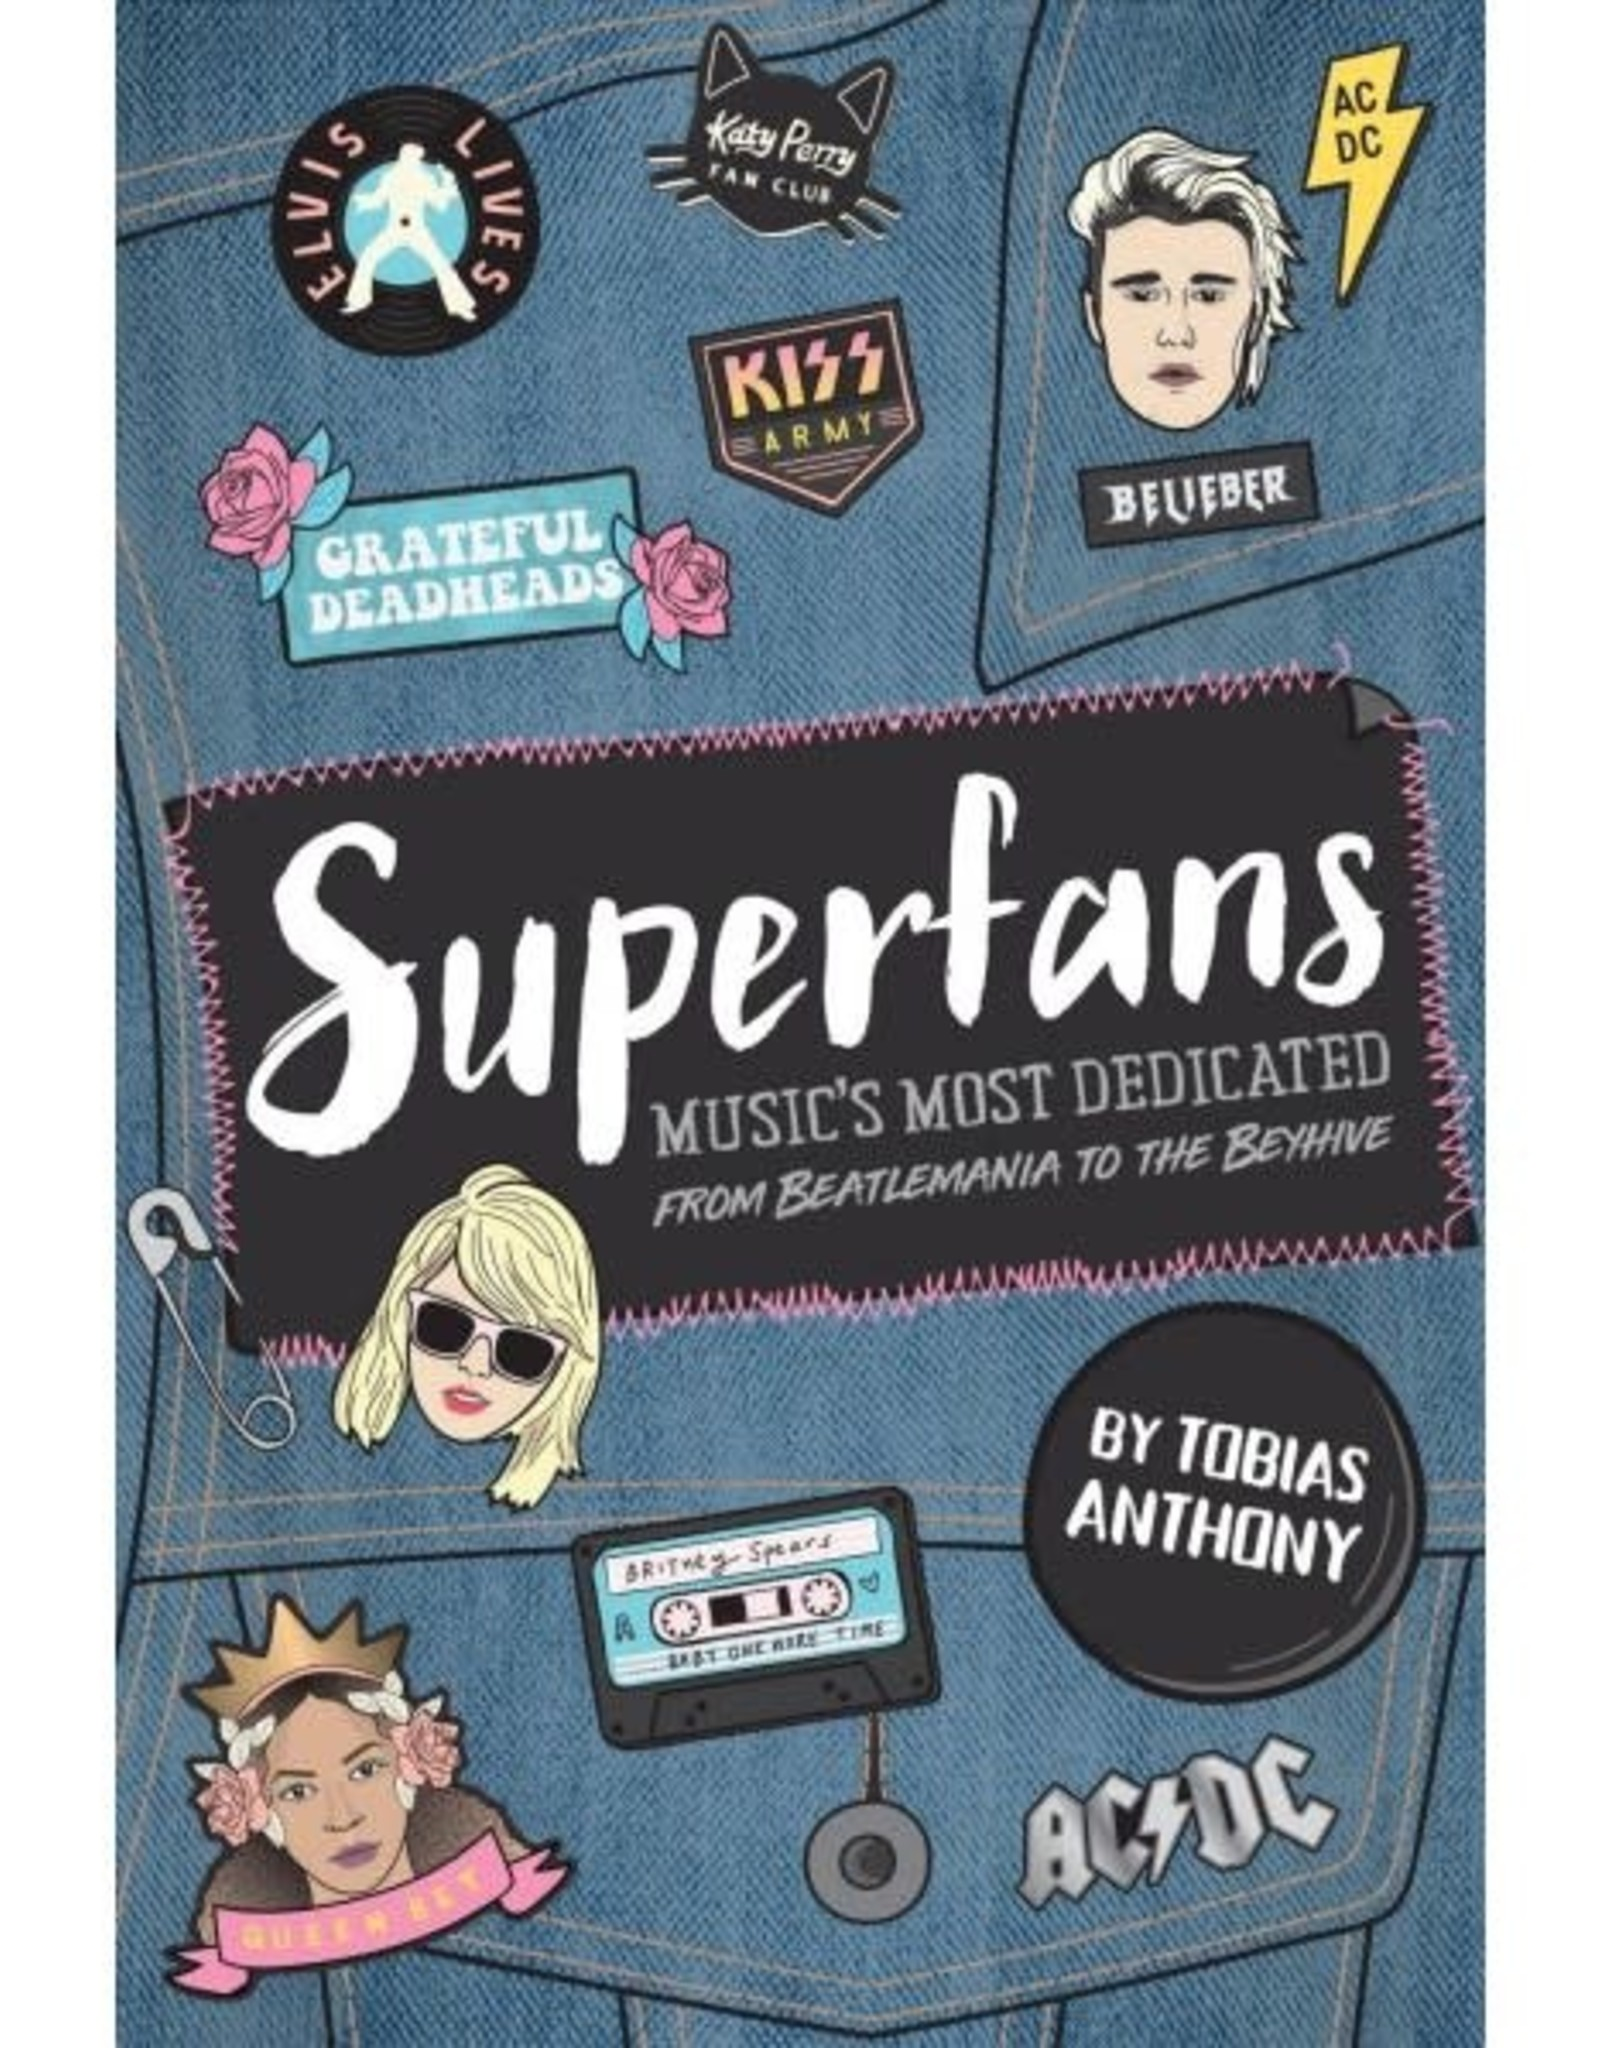 Superfans: Music's Most Dedicated